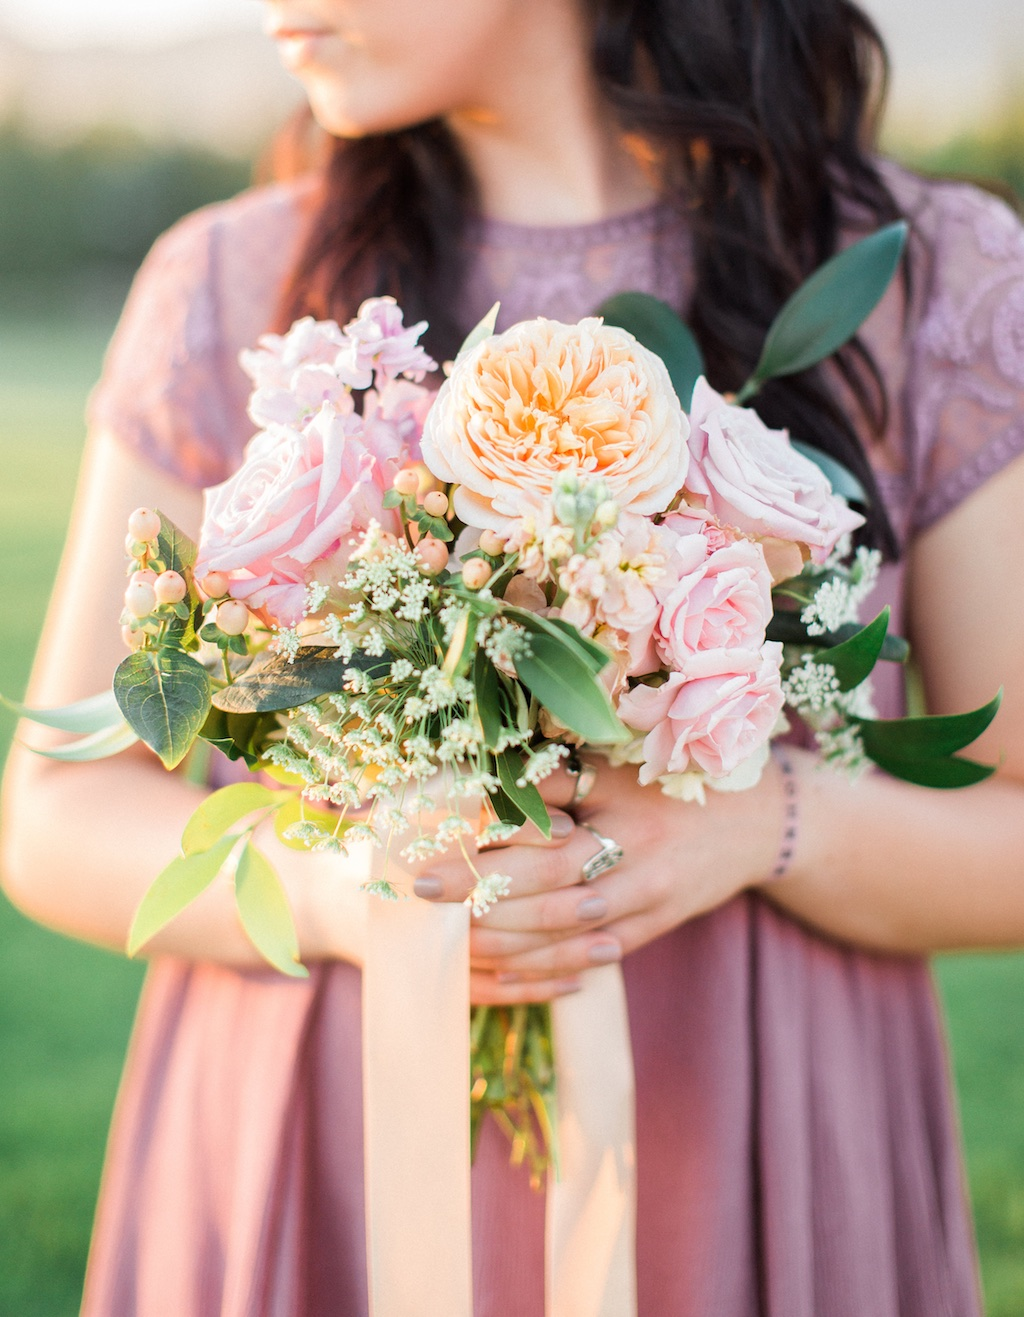 lavender peach blush wedding bouquet inspiration flowers utah calie rose, juliet garden rose bouquet